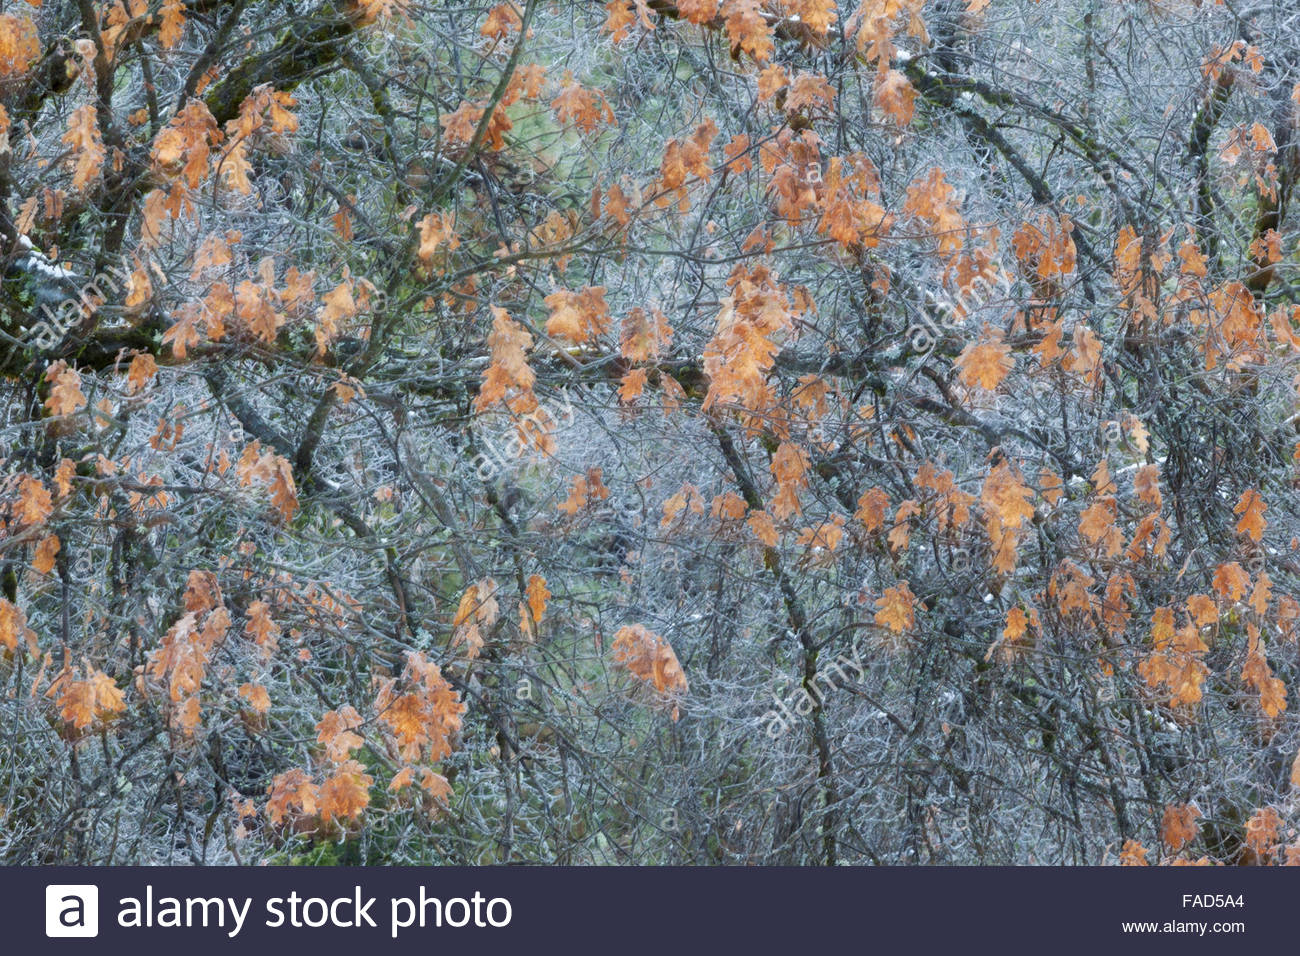 Black Oak Leaves in Fall After Snow Storm, Yosemite National Park, California - Stock Image